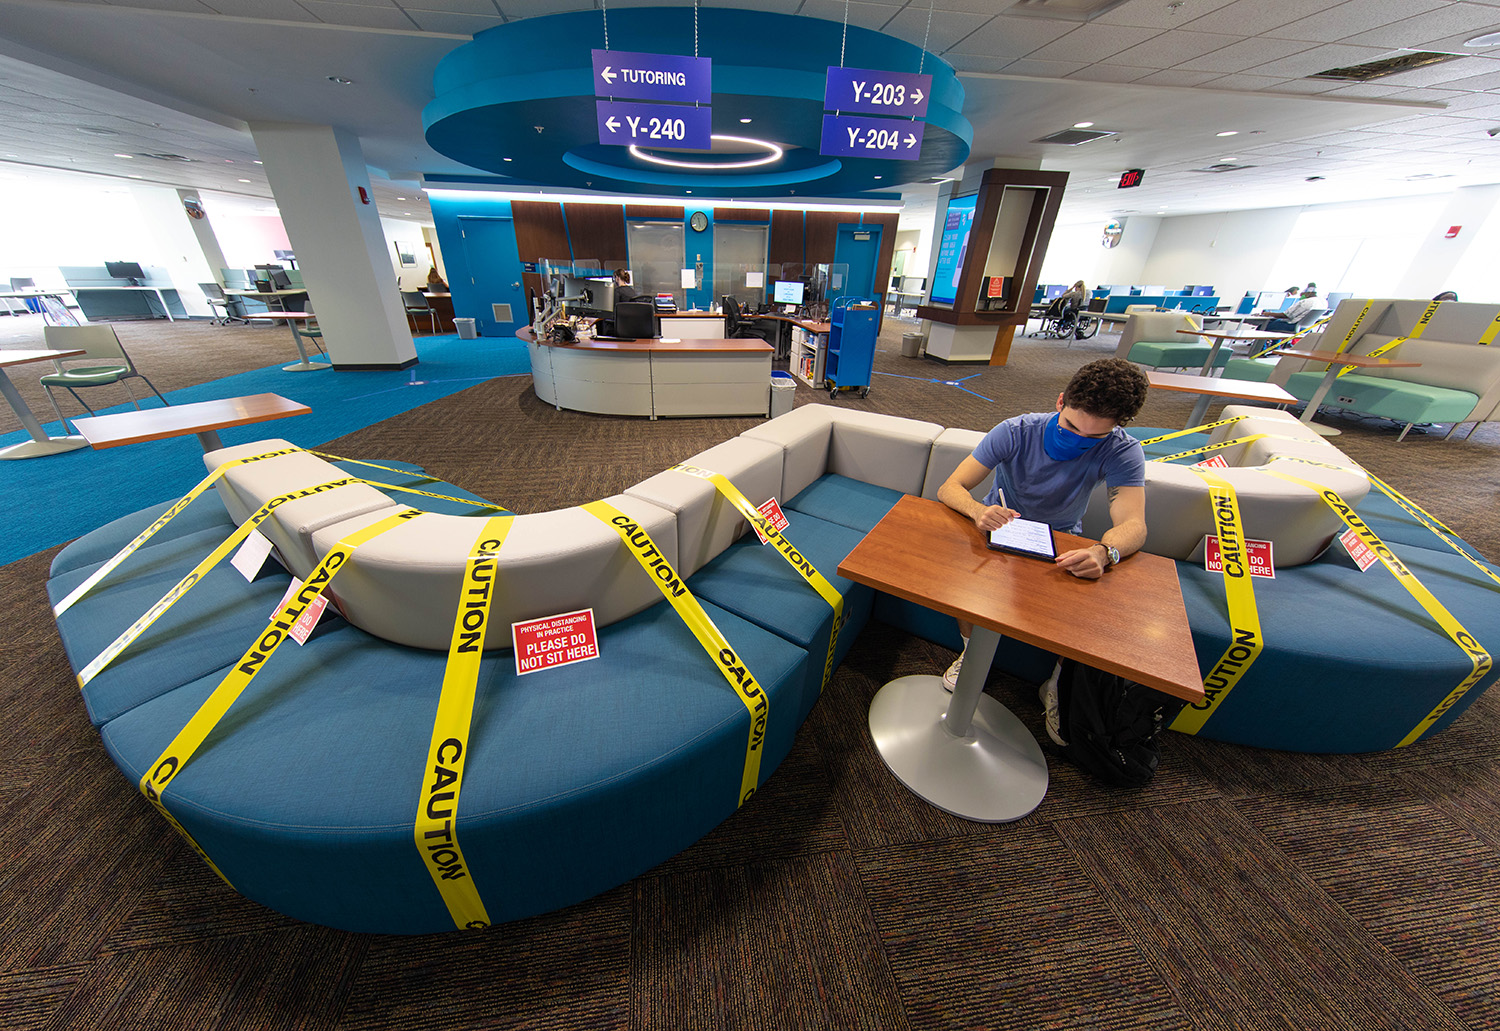 A student studies at the one area of the couch allowed due to social distancing guidelines in the library during the second day of classes at Santa Fe College on Aug. 25, 2020 (Matt Stamey/Santa Fe College ) ***Subjects Have Releases***